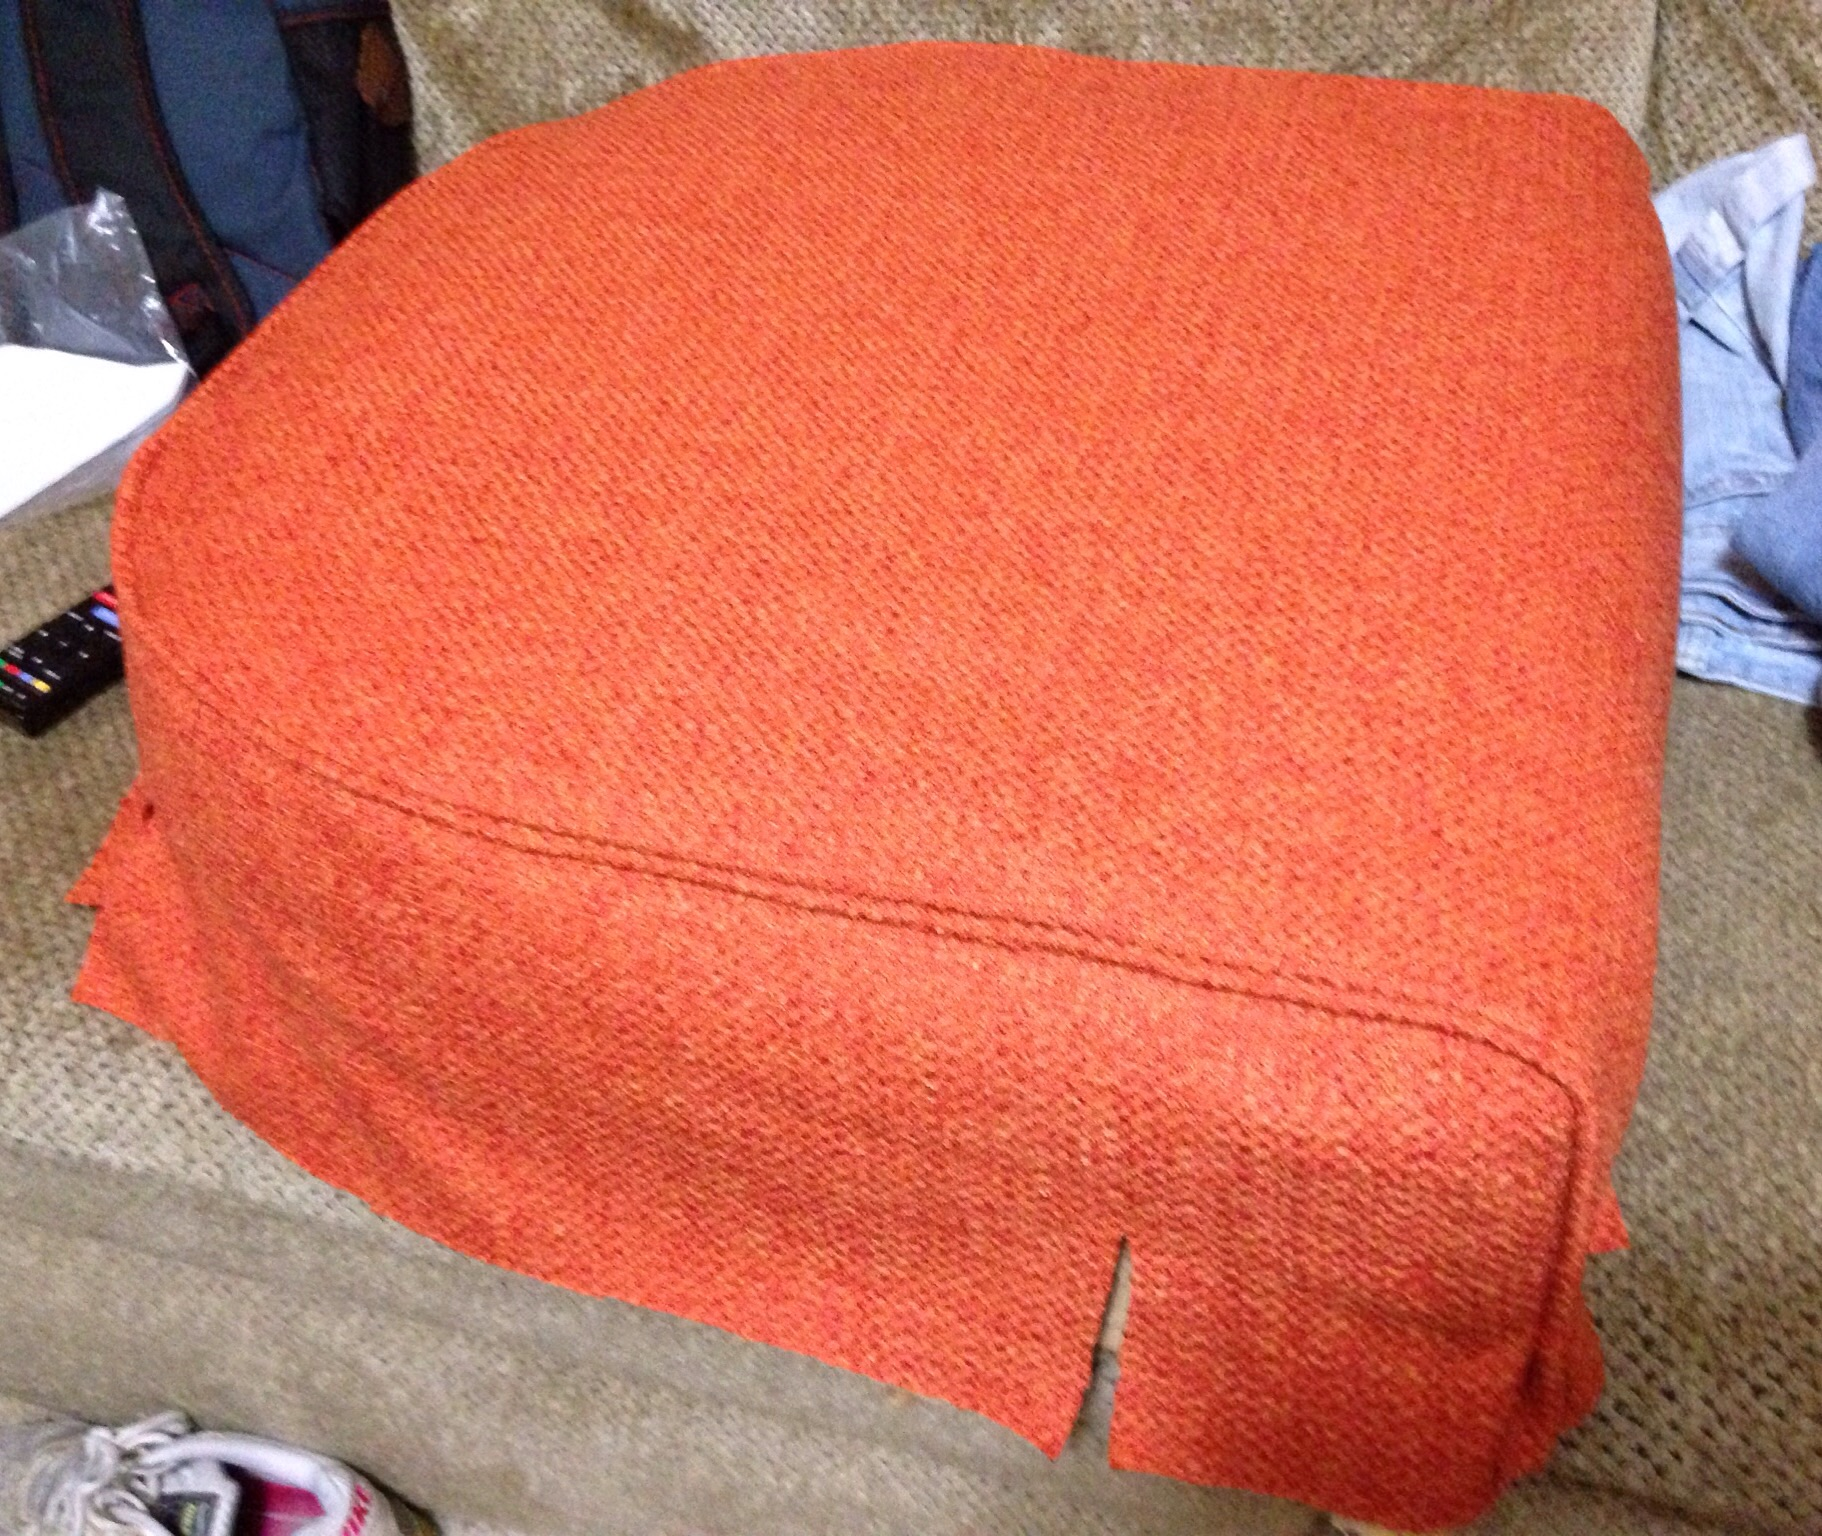 A preview of the seat fitted with the new fabric!